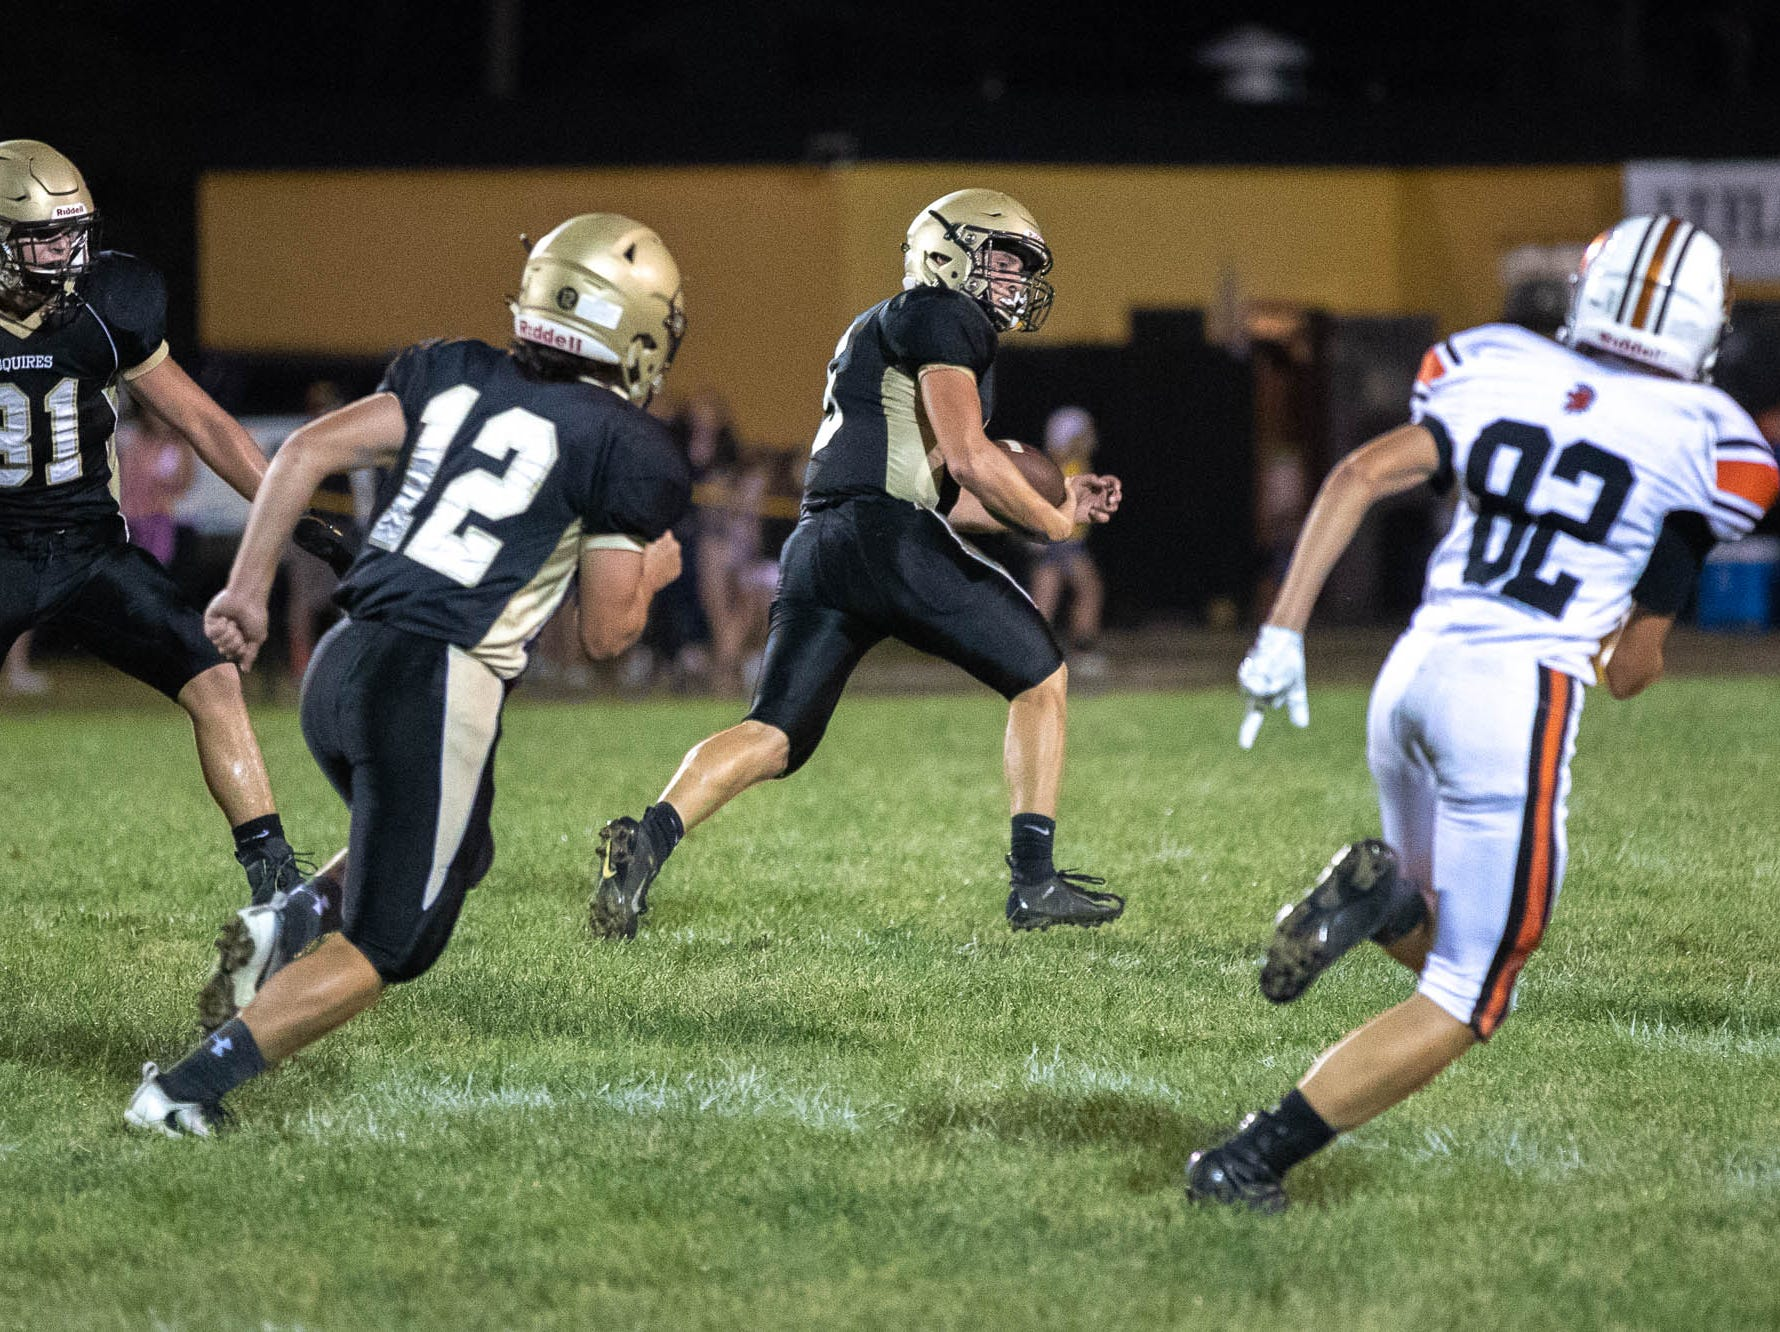 Delone's Kevin Mowrey (5) races with a fumble before scoring a 53-yard touchdown during the second half of a football game between Delone Catholic and York Suburban, Friday, Aug. 31, 2018, at Delone Catholic High School in McSherrystown. Delone beat York Suburban 62-0.